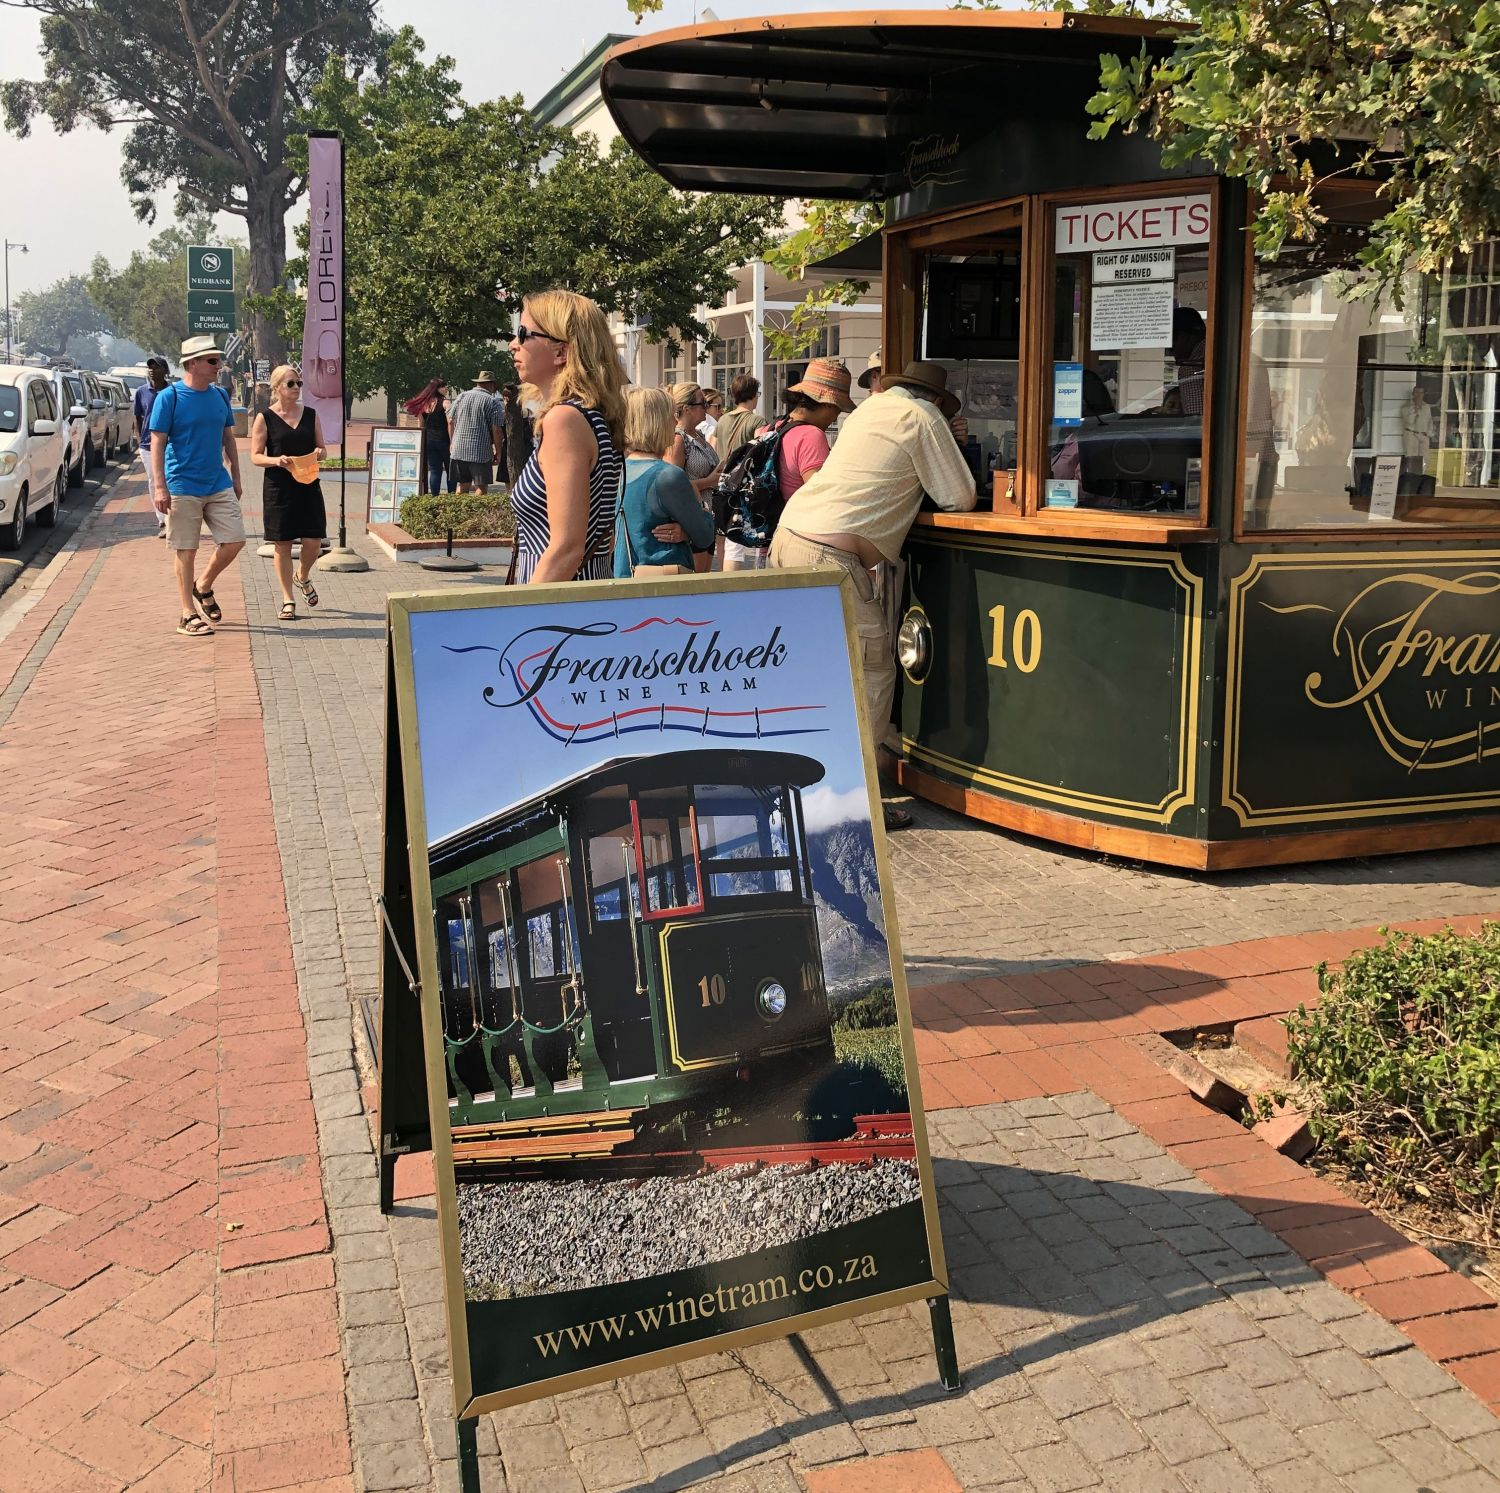 Wine Tram Ticketschalter in Franschhoek